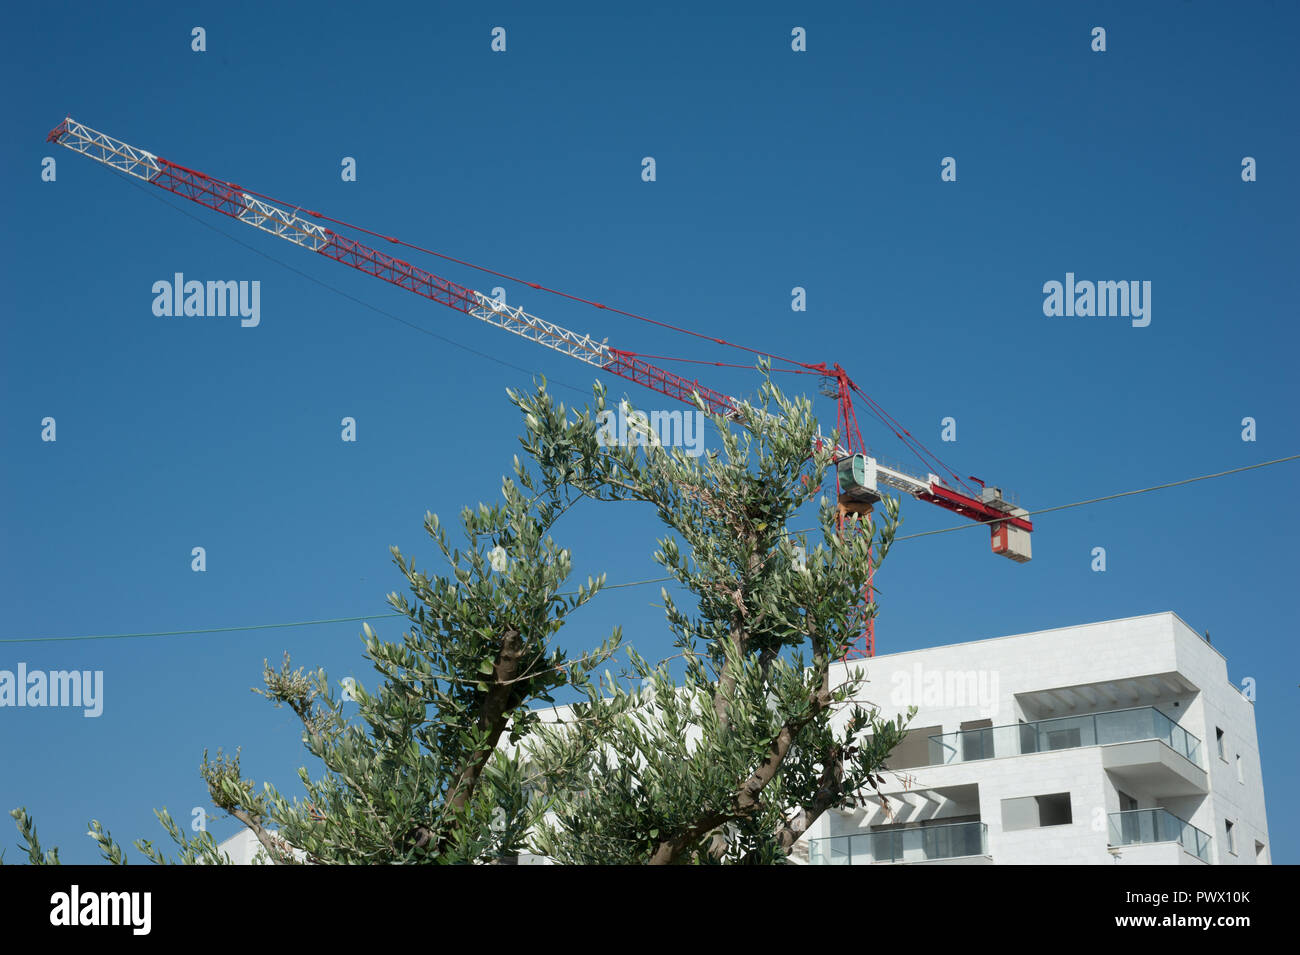 new building with crane - Stock Image